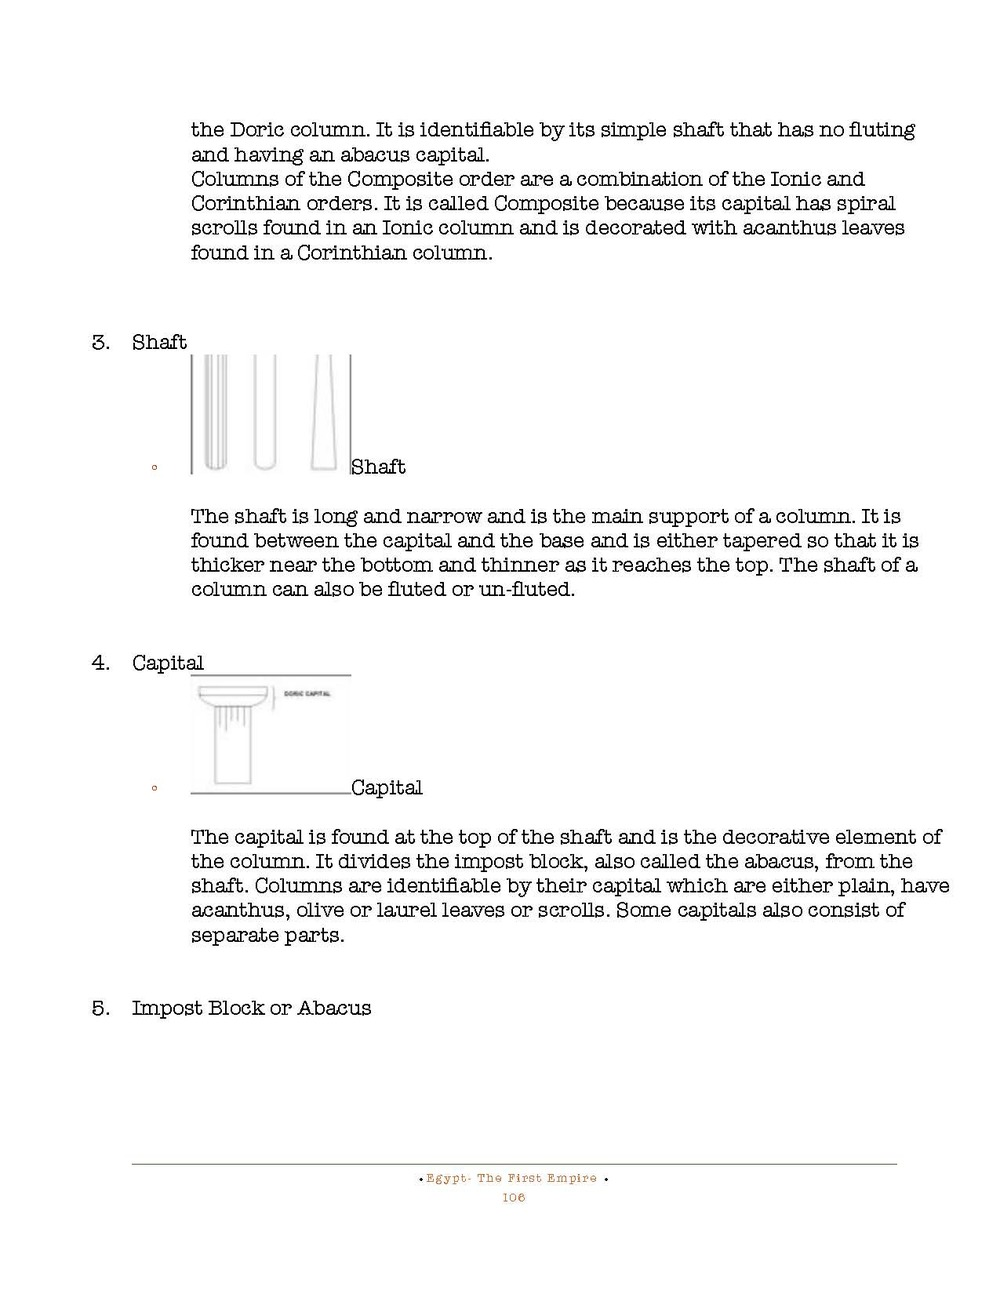 HOCE- Egypt  (First Empire) Notes_Page_106.jpg